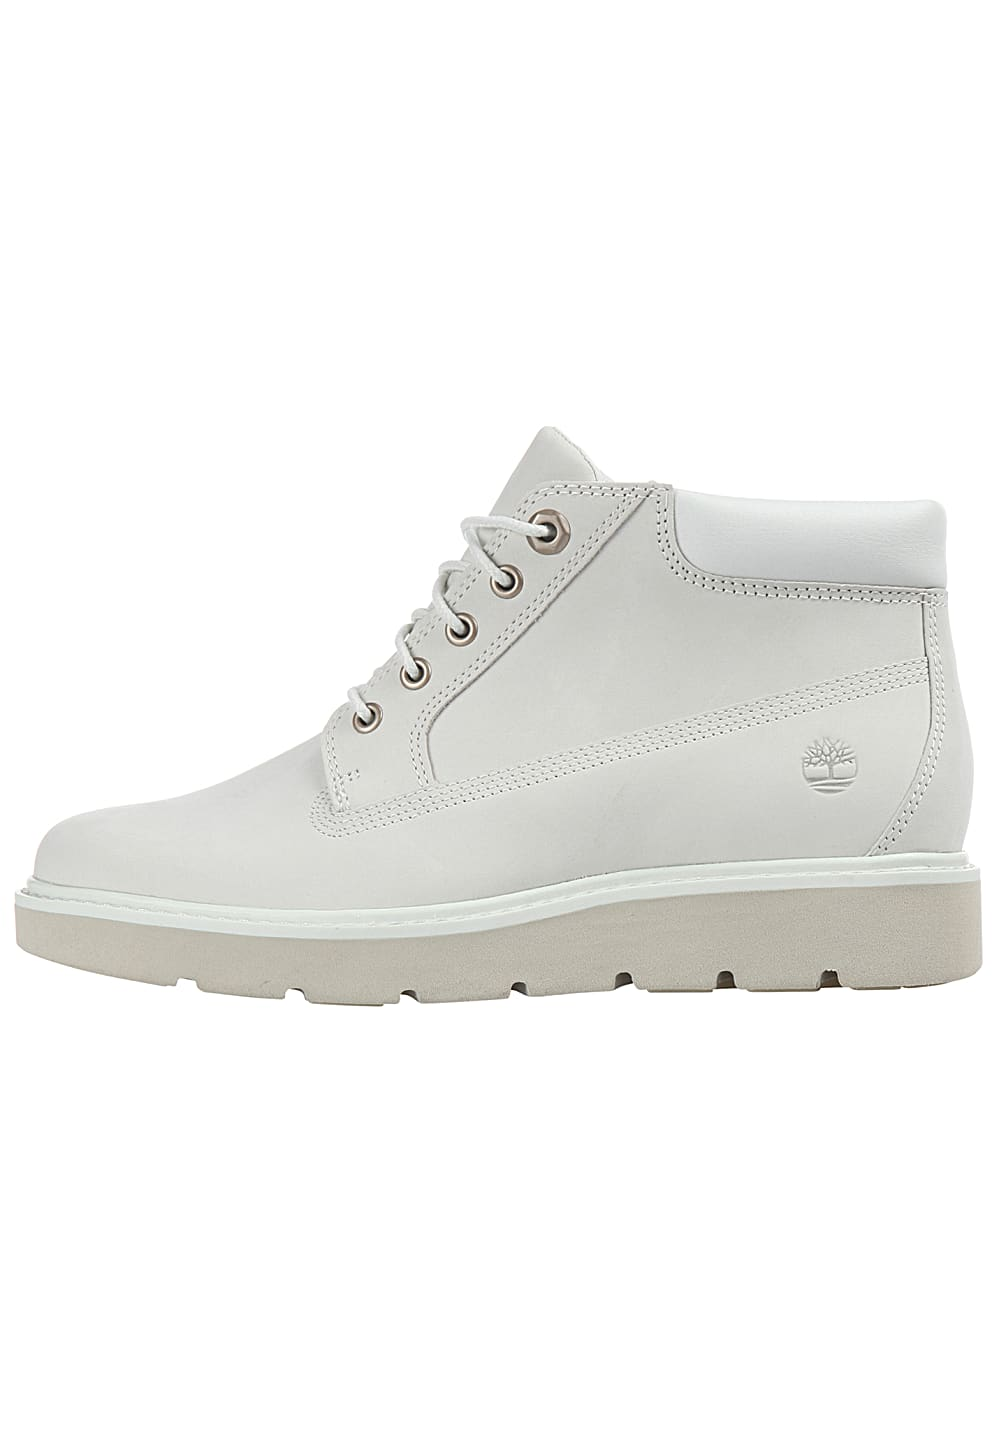 timberland femme nellie